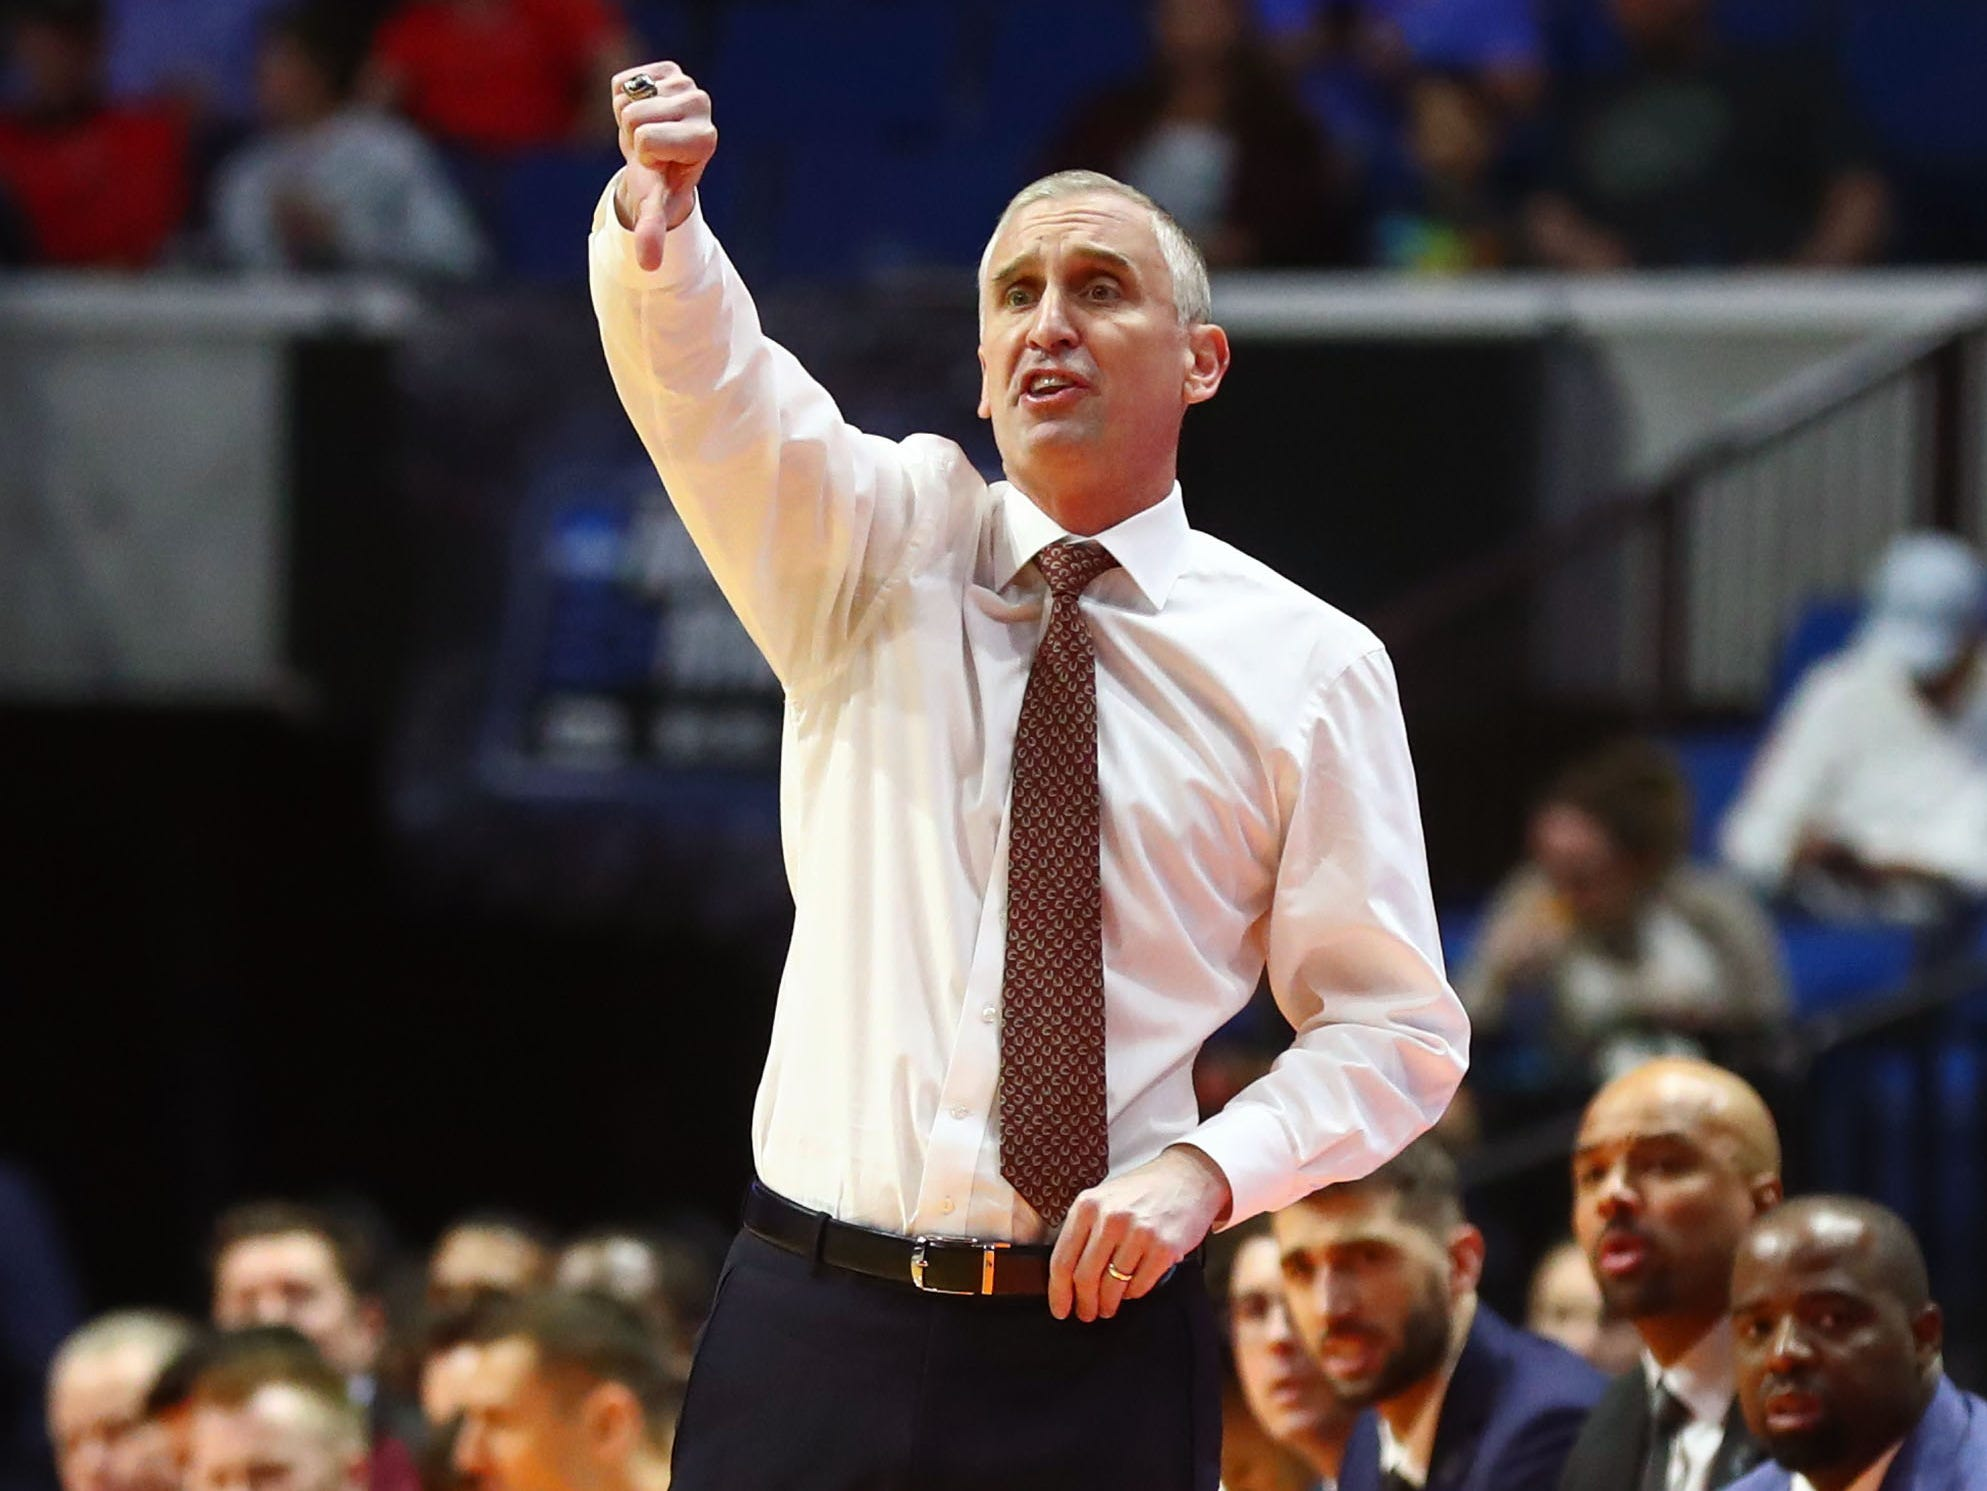 Mar 22, 2019; Tulsa, OK, USA; Arizona State Sun Devils head coach Bobby Hurley instructs his team during the first half of their game against the Buffalo Bulls in the first round of the 2019 NCAA Tournament at BOK Center. Mandatory Credit: Mark J. Rebilas-USA TODAY Sports